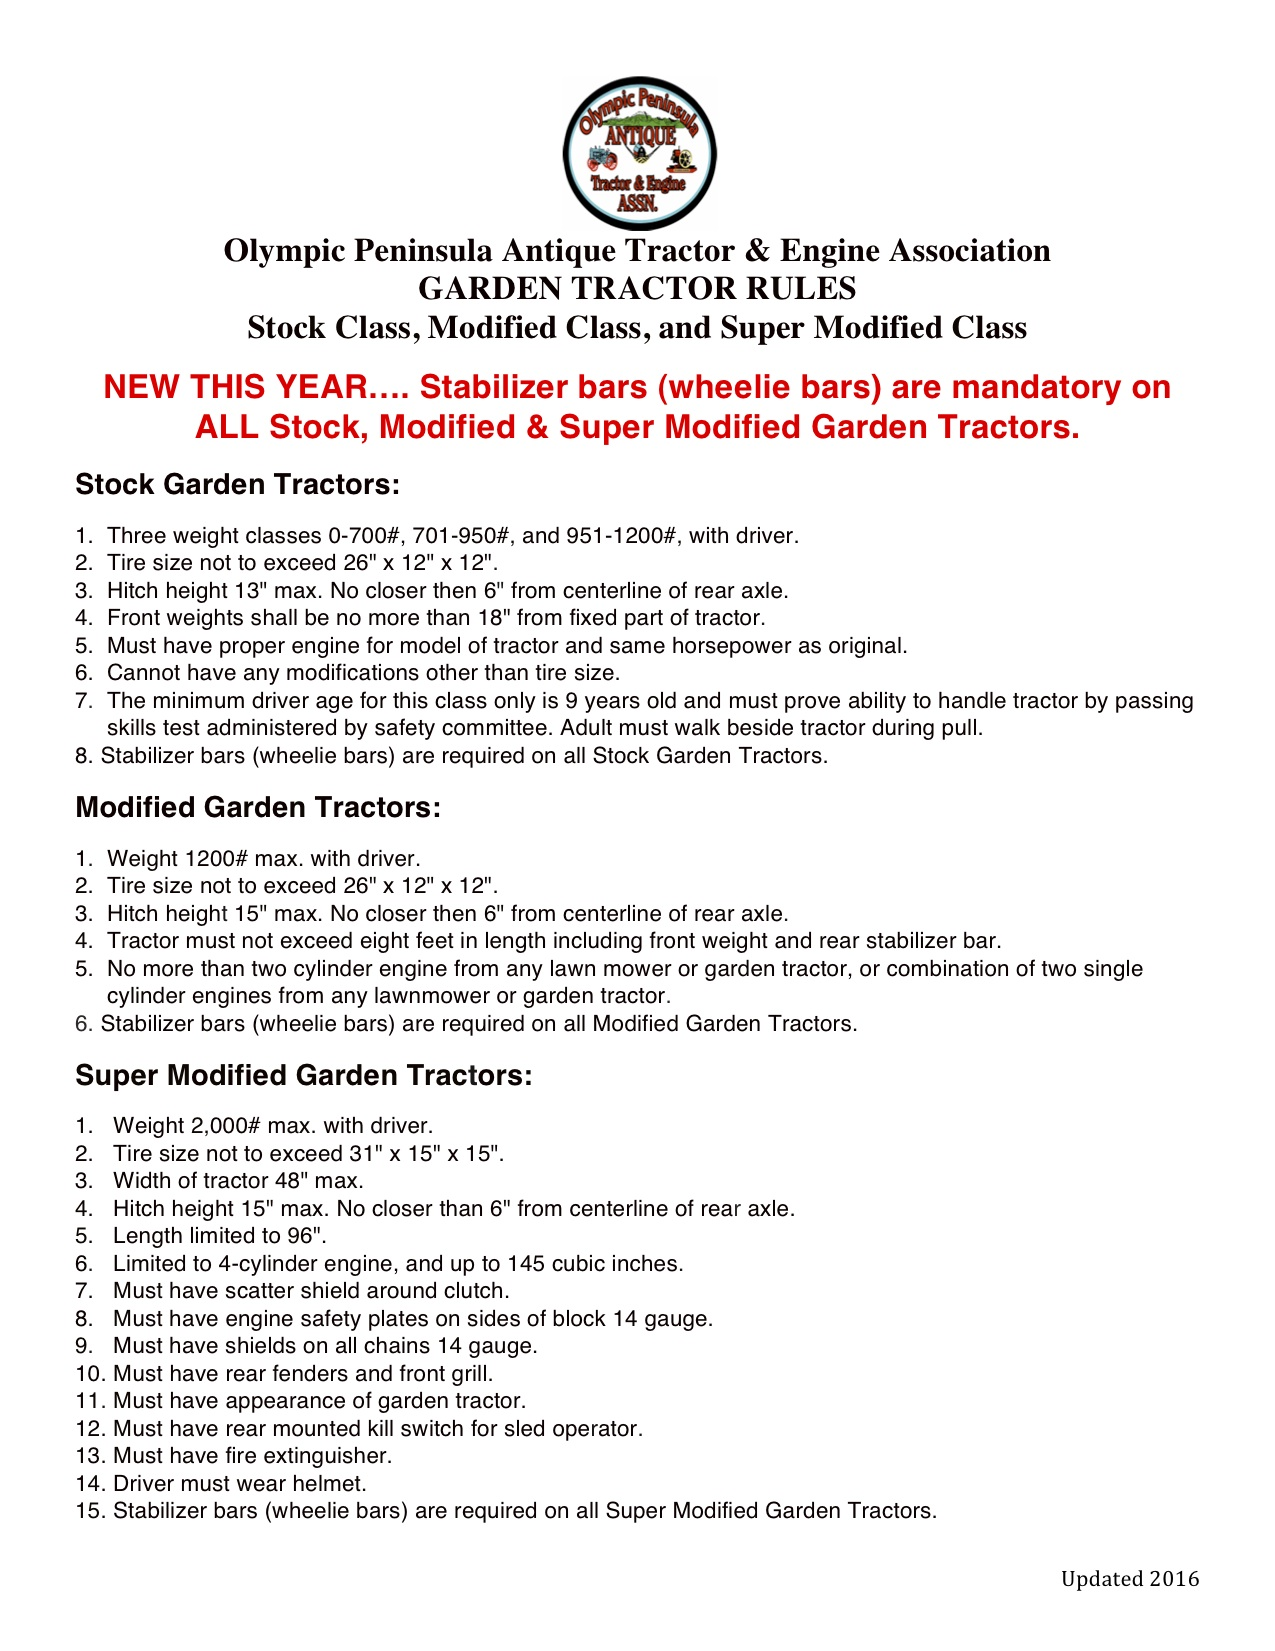 Garden Tractor Rules for 2016